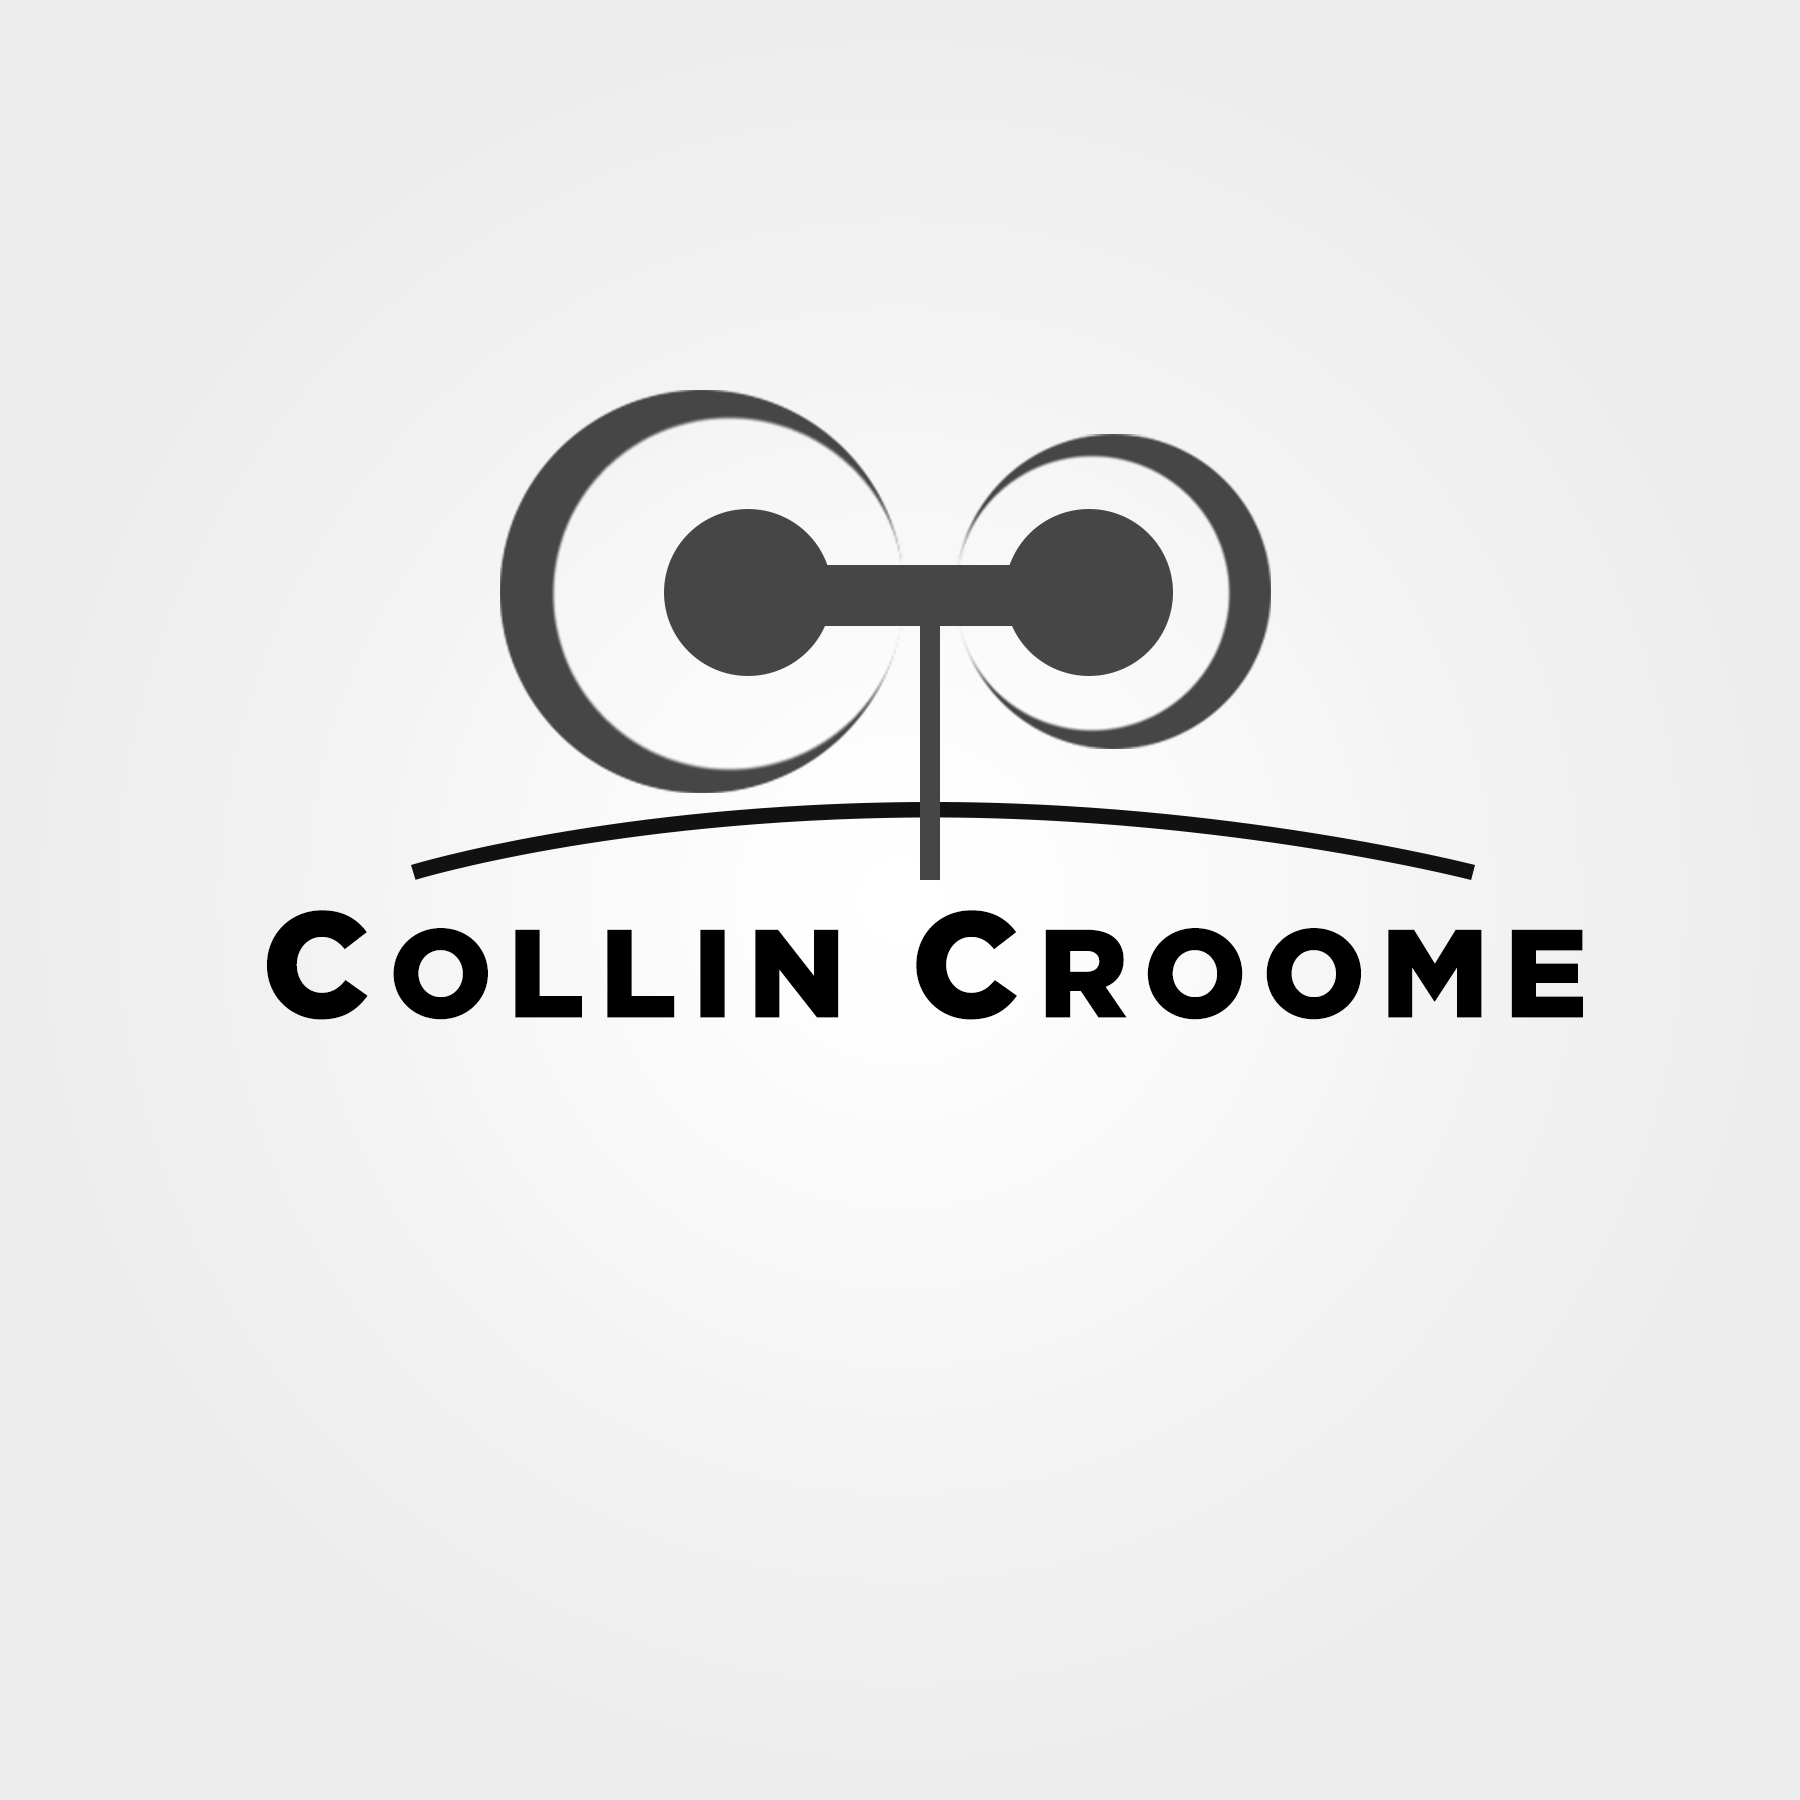 Logo Design by Lemuel Arvin Tanzo - Entry No. 36 in the Logo Design Contest Modern Logo Design for Collin Croome.